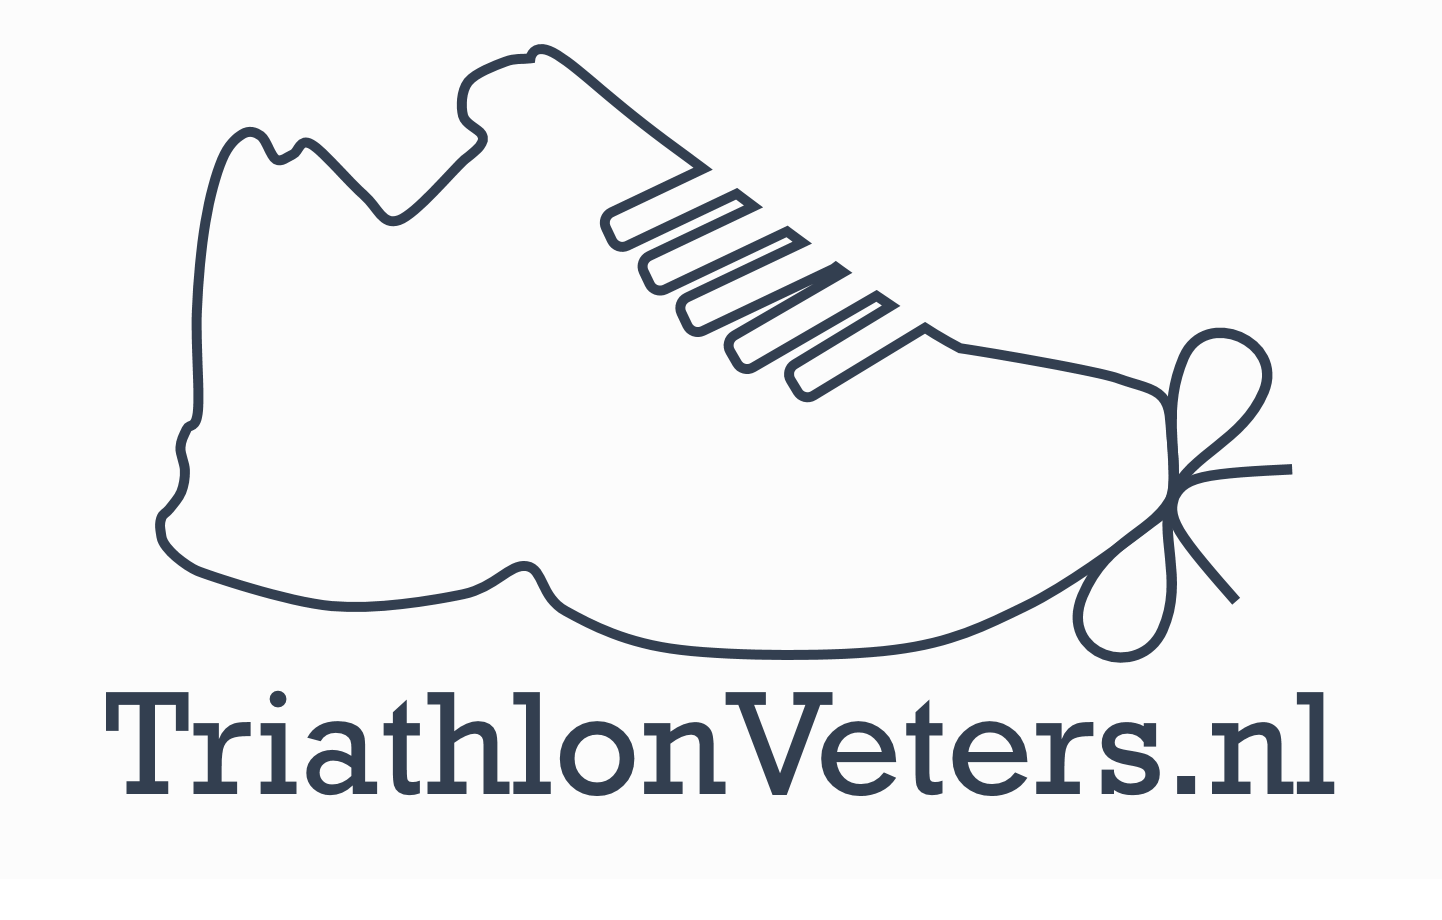 elastieken triathlon veters